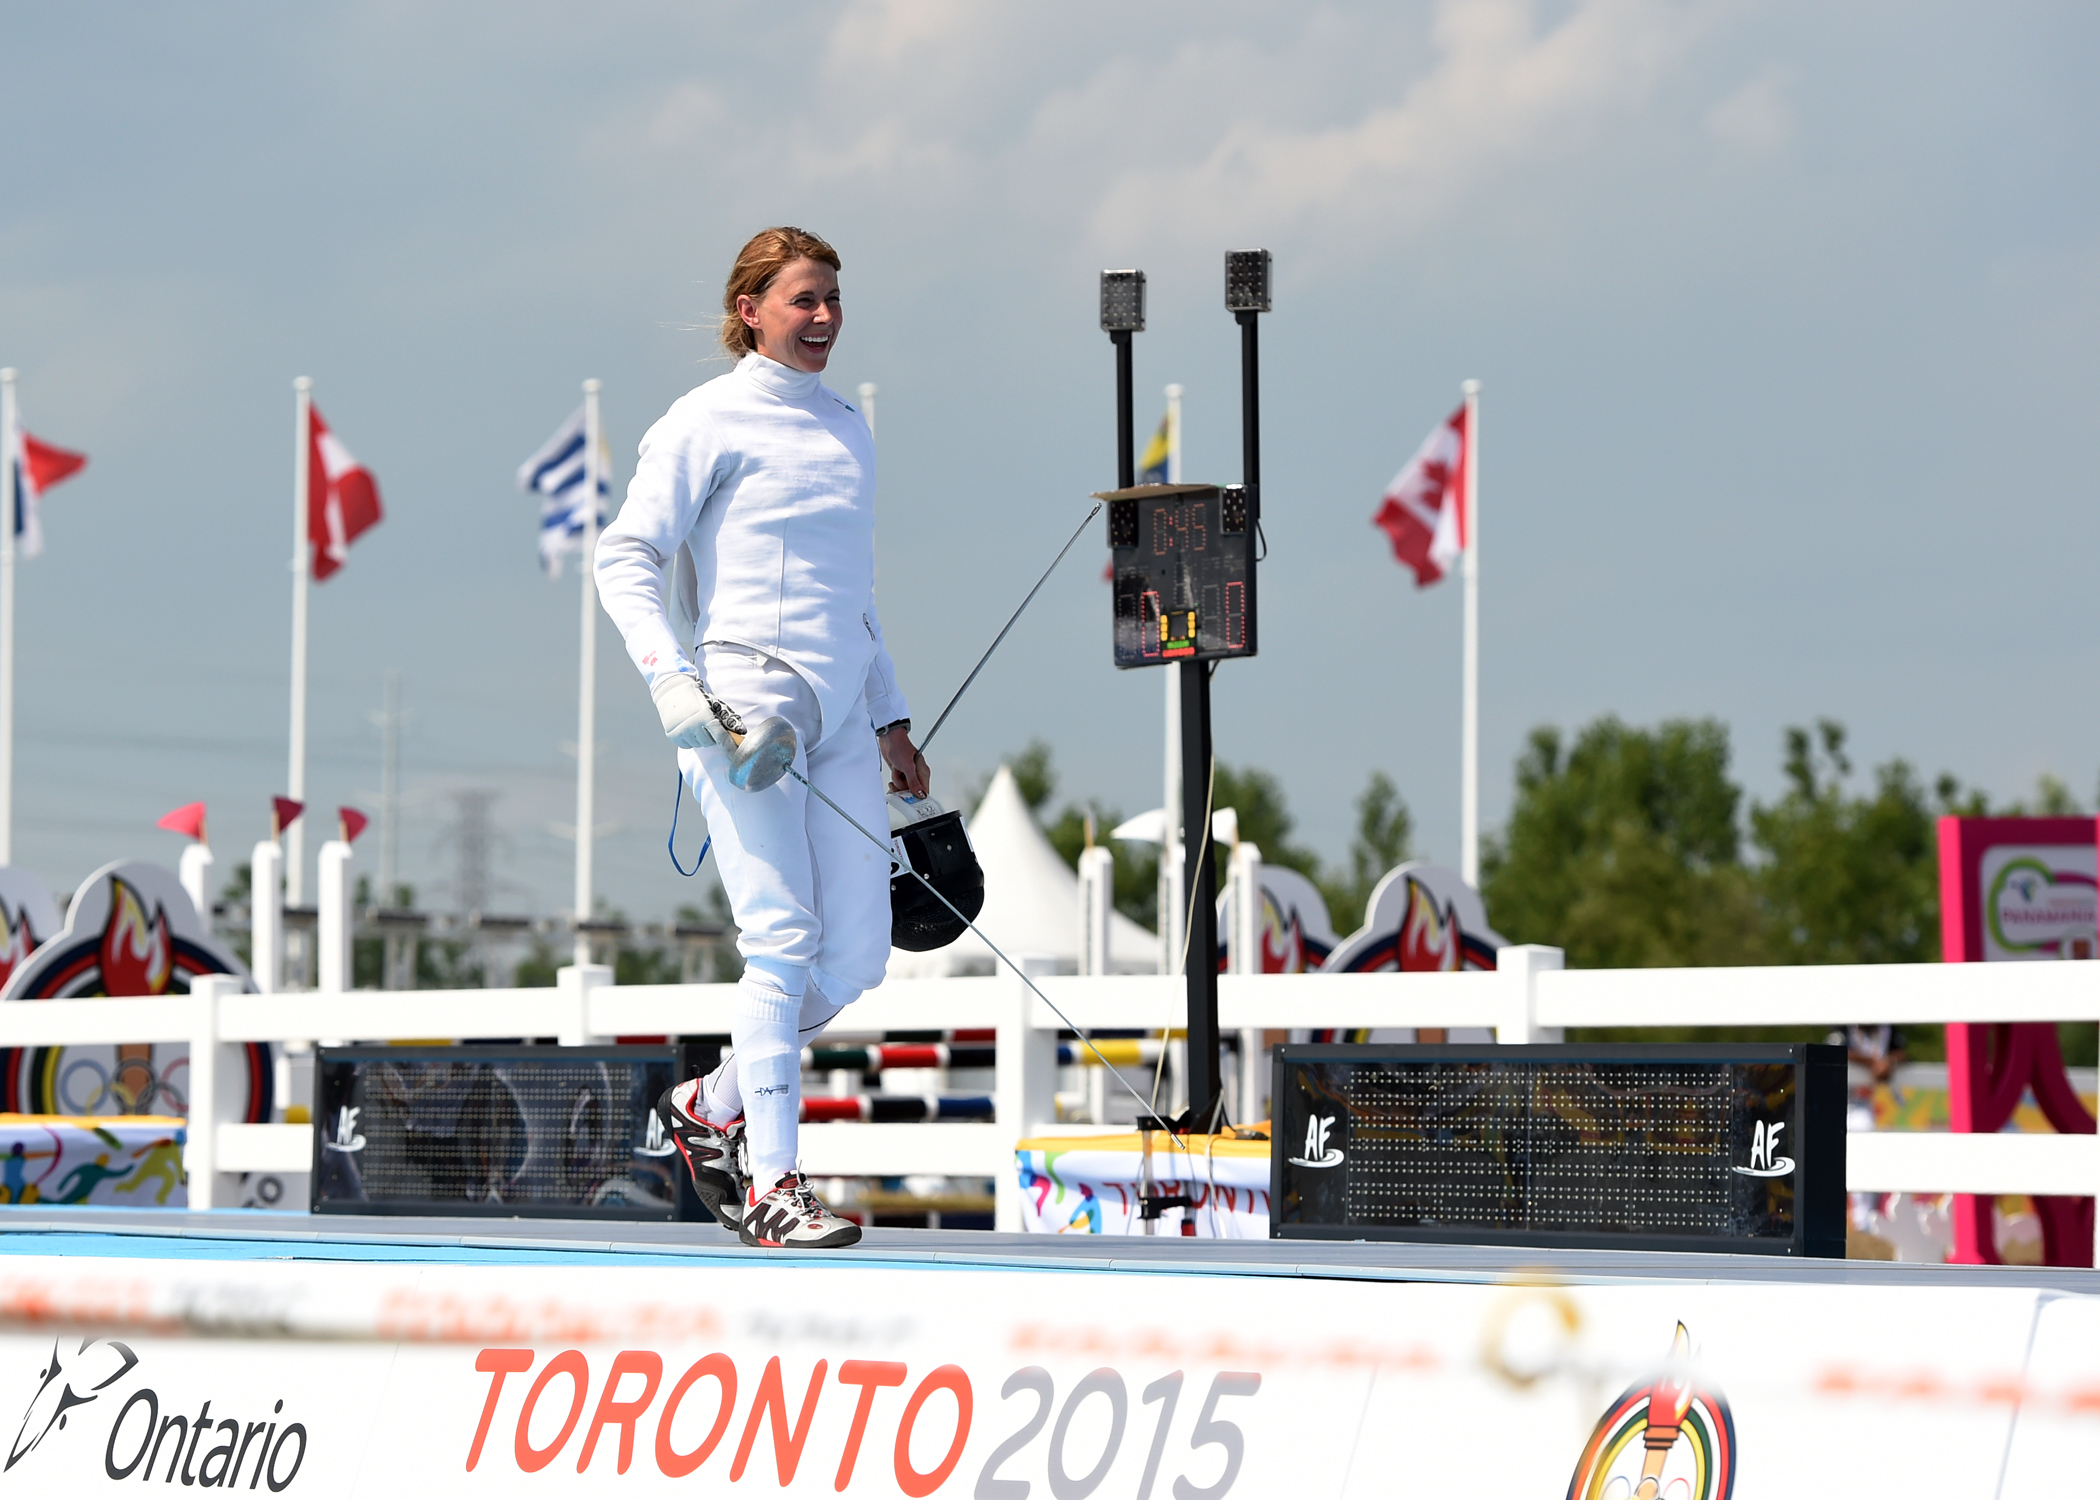 Donna Vakialis competes in the modern pentathlon competition at the Toronto 2015 Pan Am Games. Jay Tse/COC